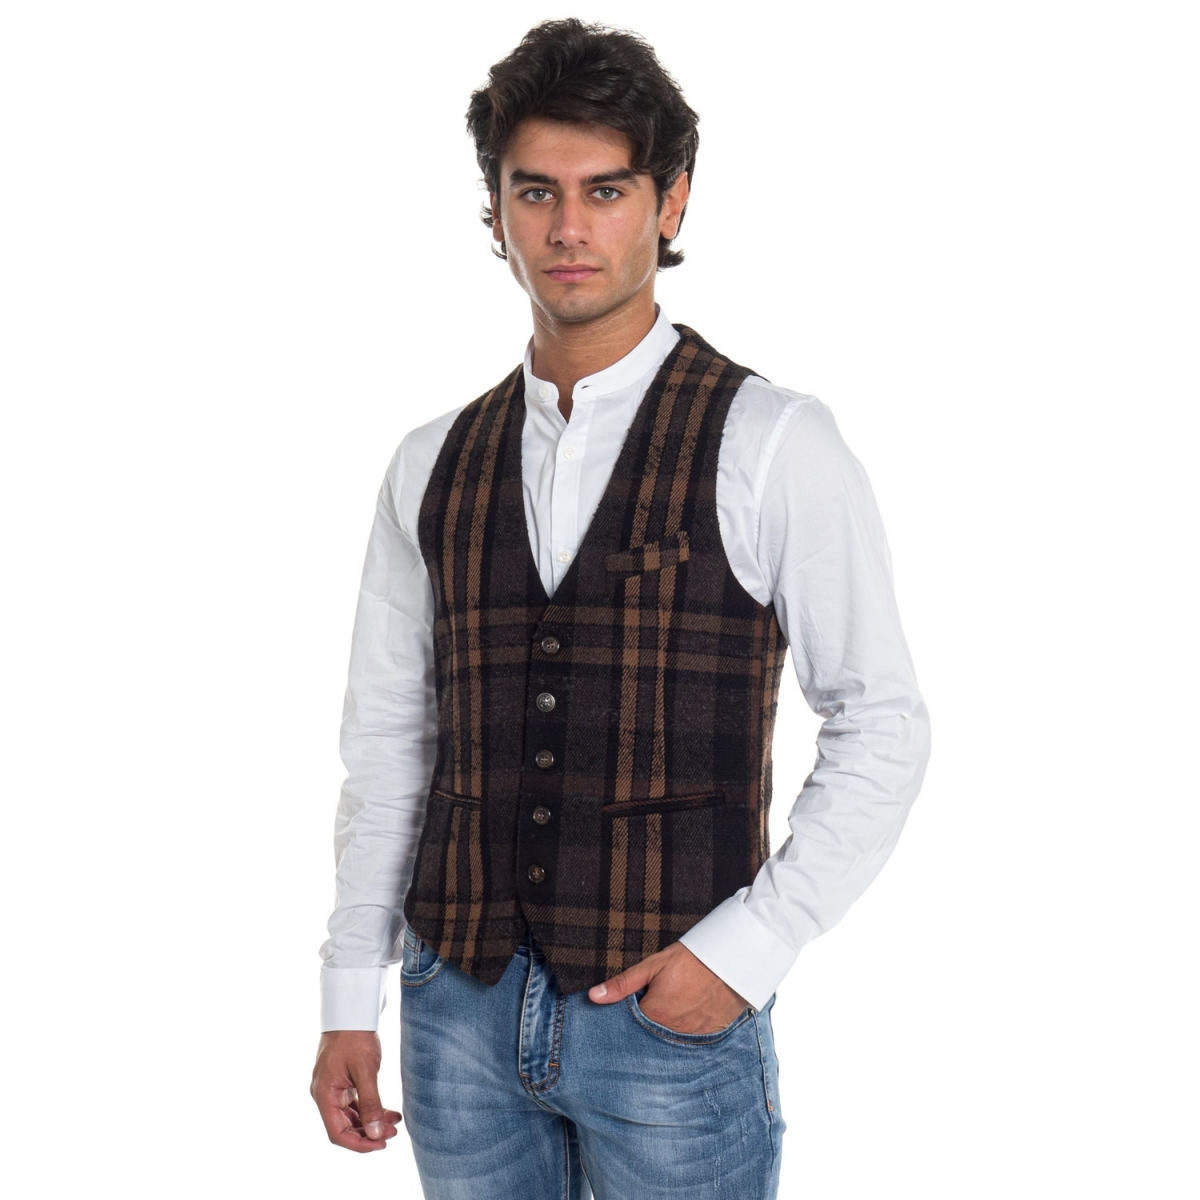 ropa Chaleco hombre Gilet GLGN21383 GIANNI LUPO Cafedelmar Shop